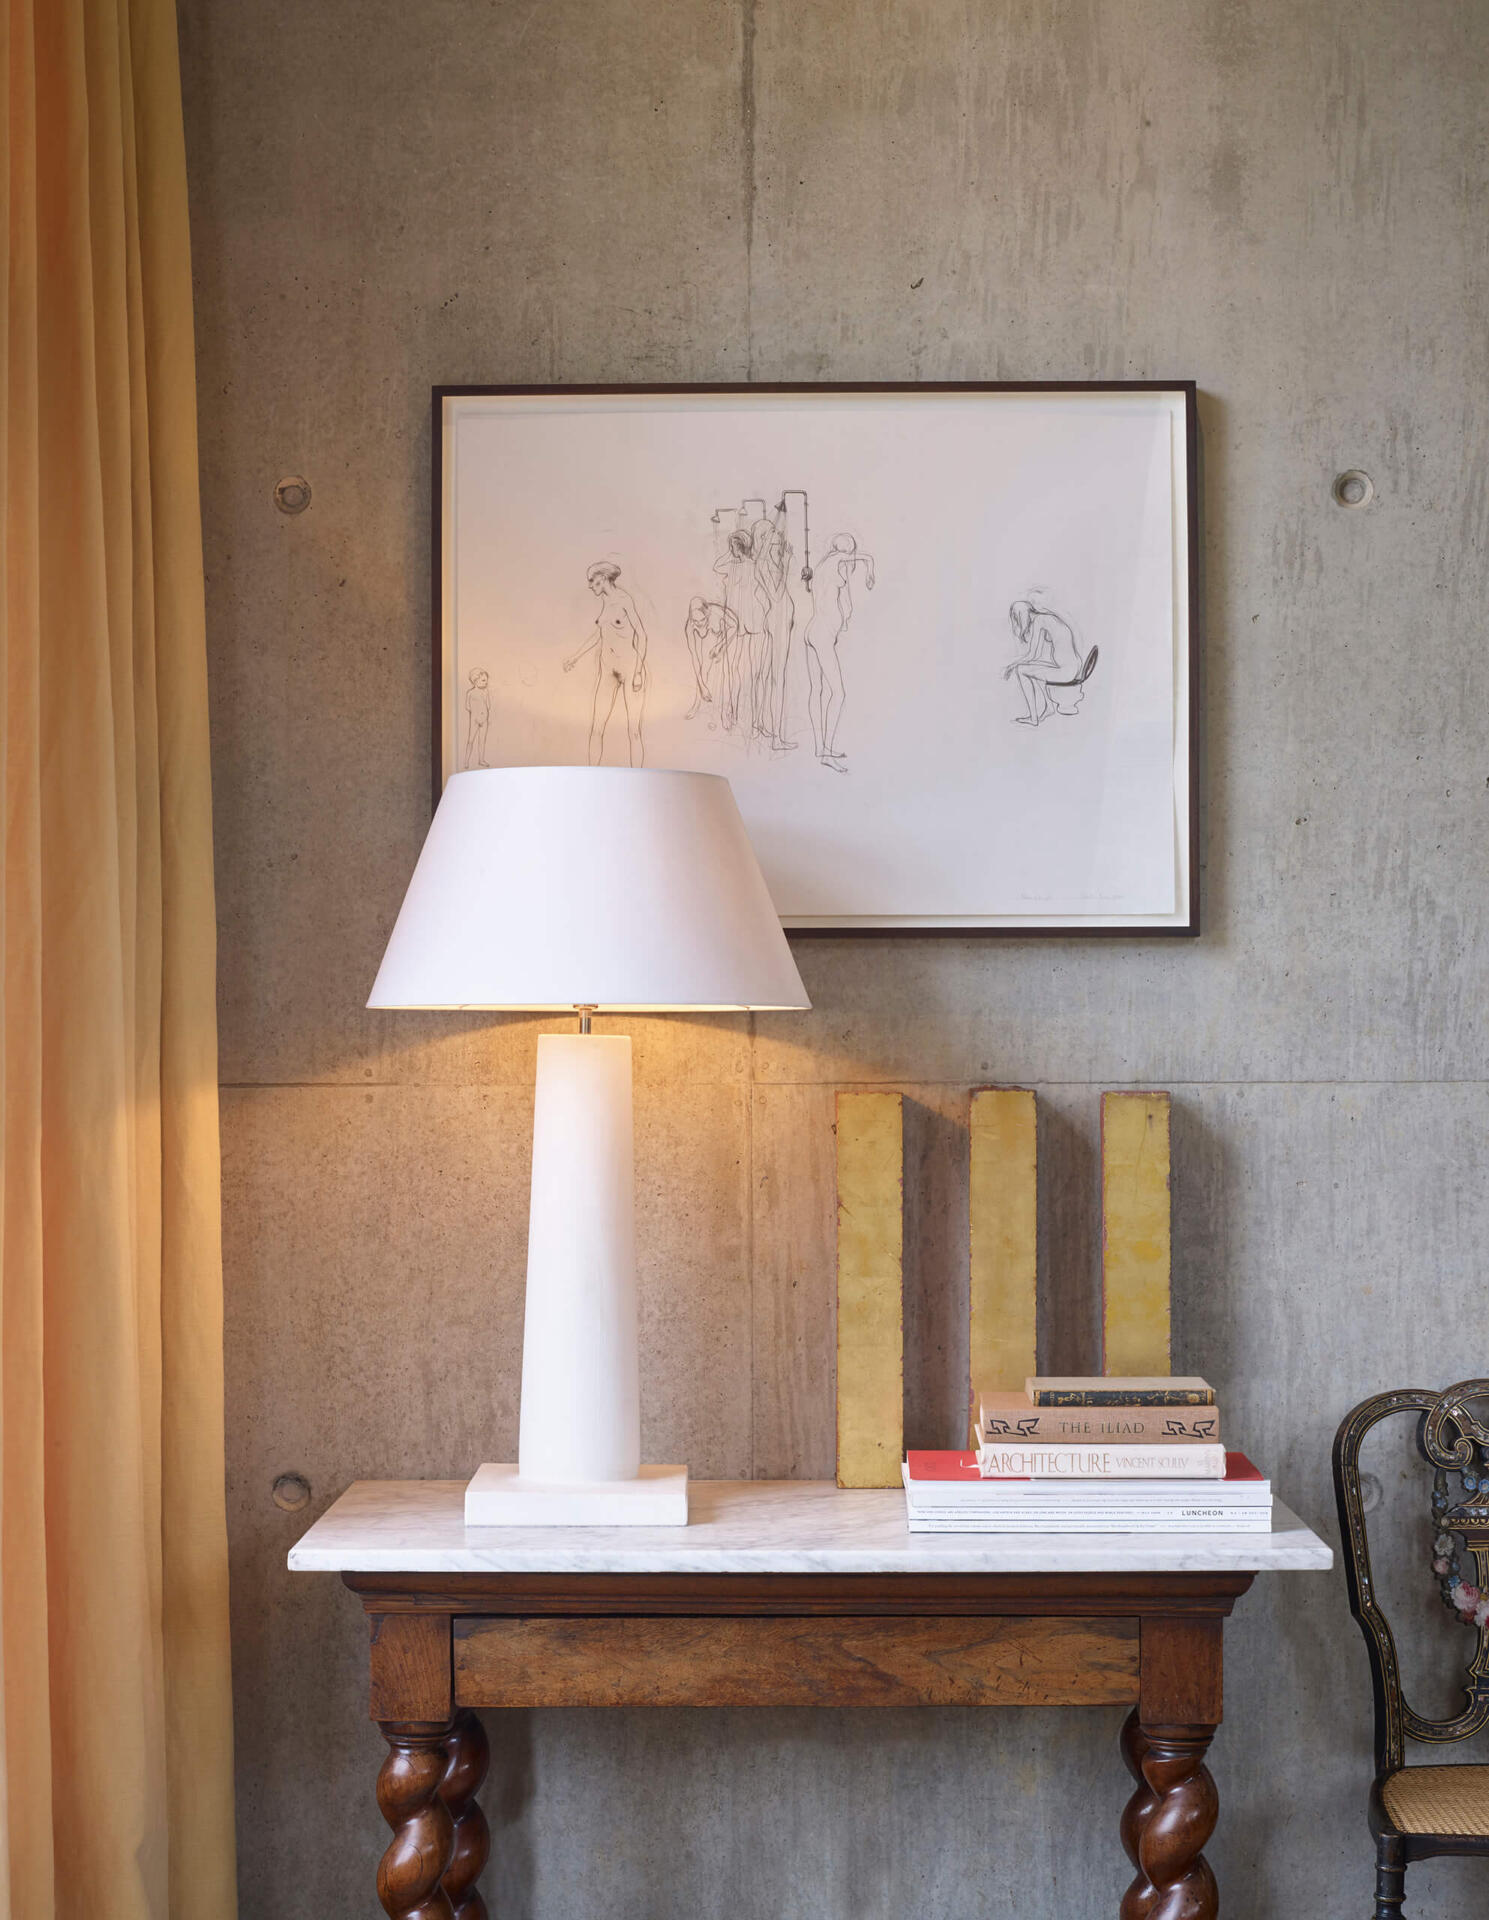 The Frank plaster table lamp by Collier Webb